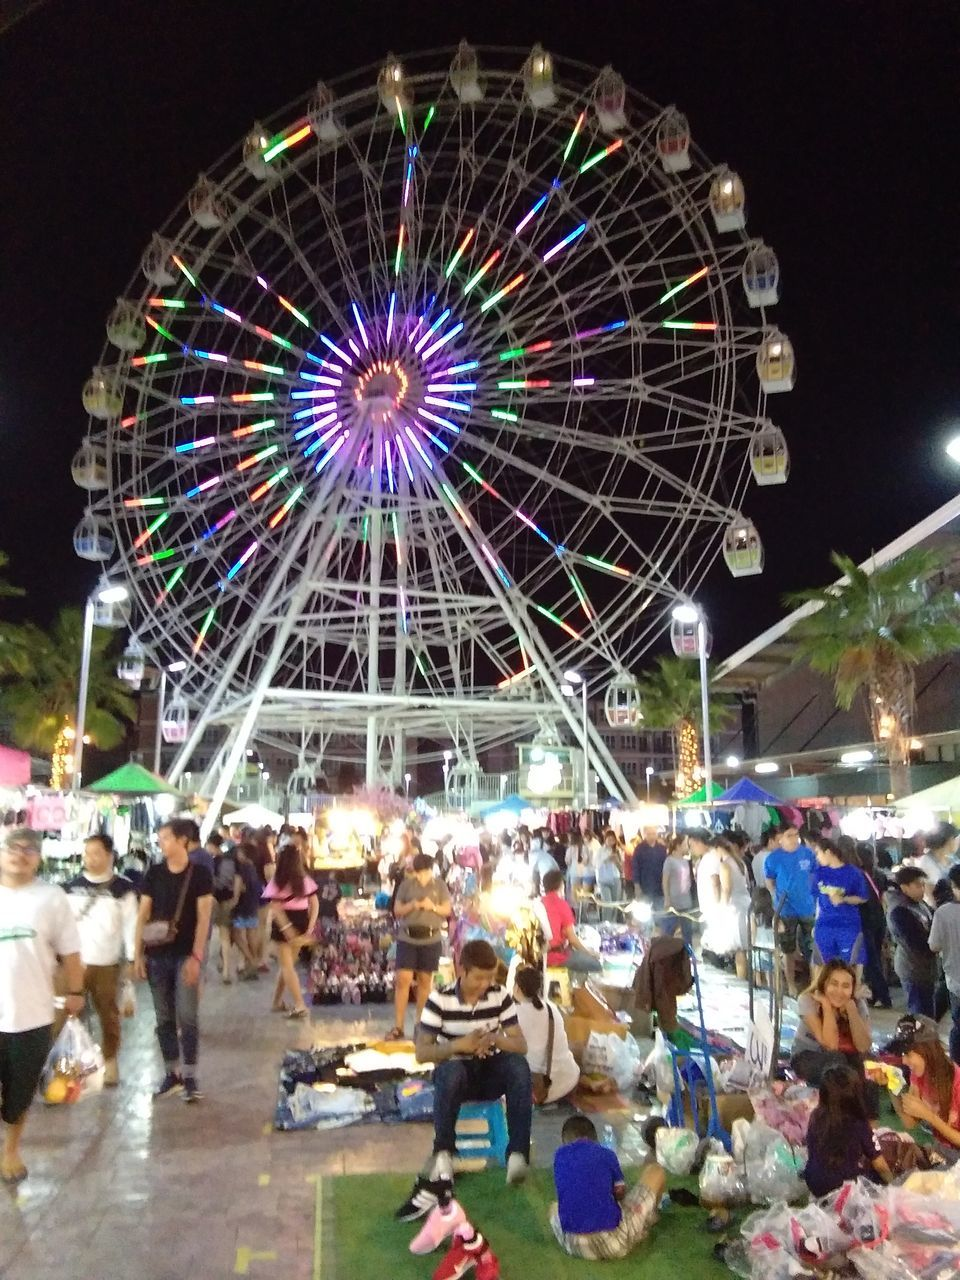 amusement park, ferris wheel, arts culture and entertainment, amusement park ride, large group of people, leisure activity, illuminated, night, enjoyment, low angle view, sky, outdoors, group of people, carousel, people